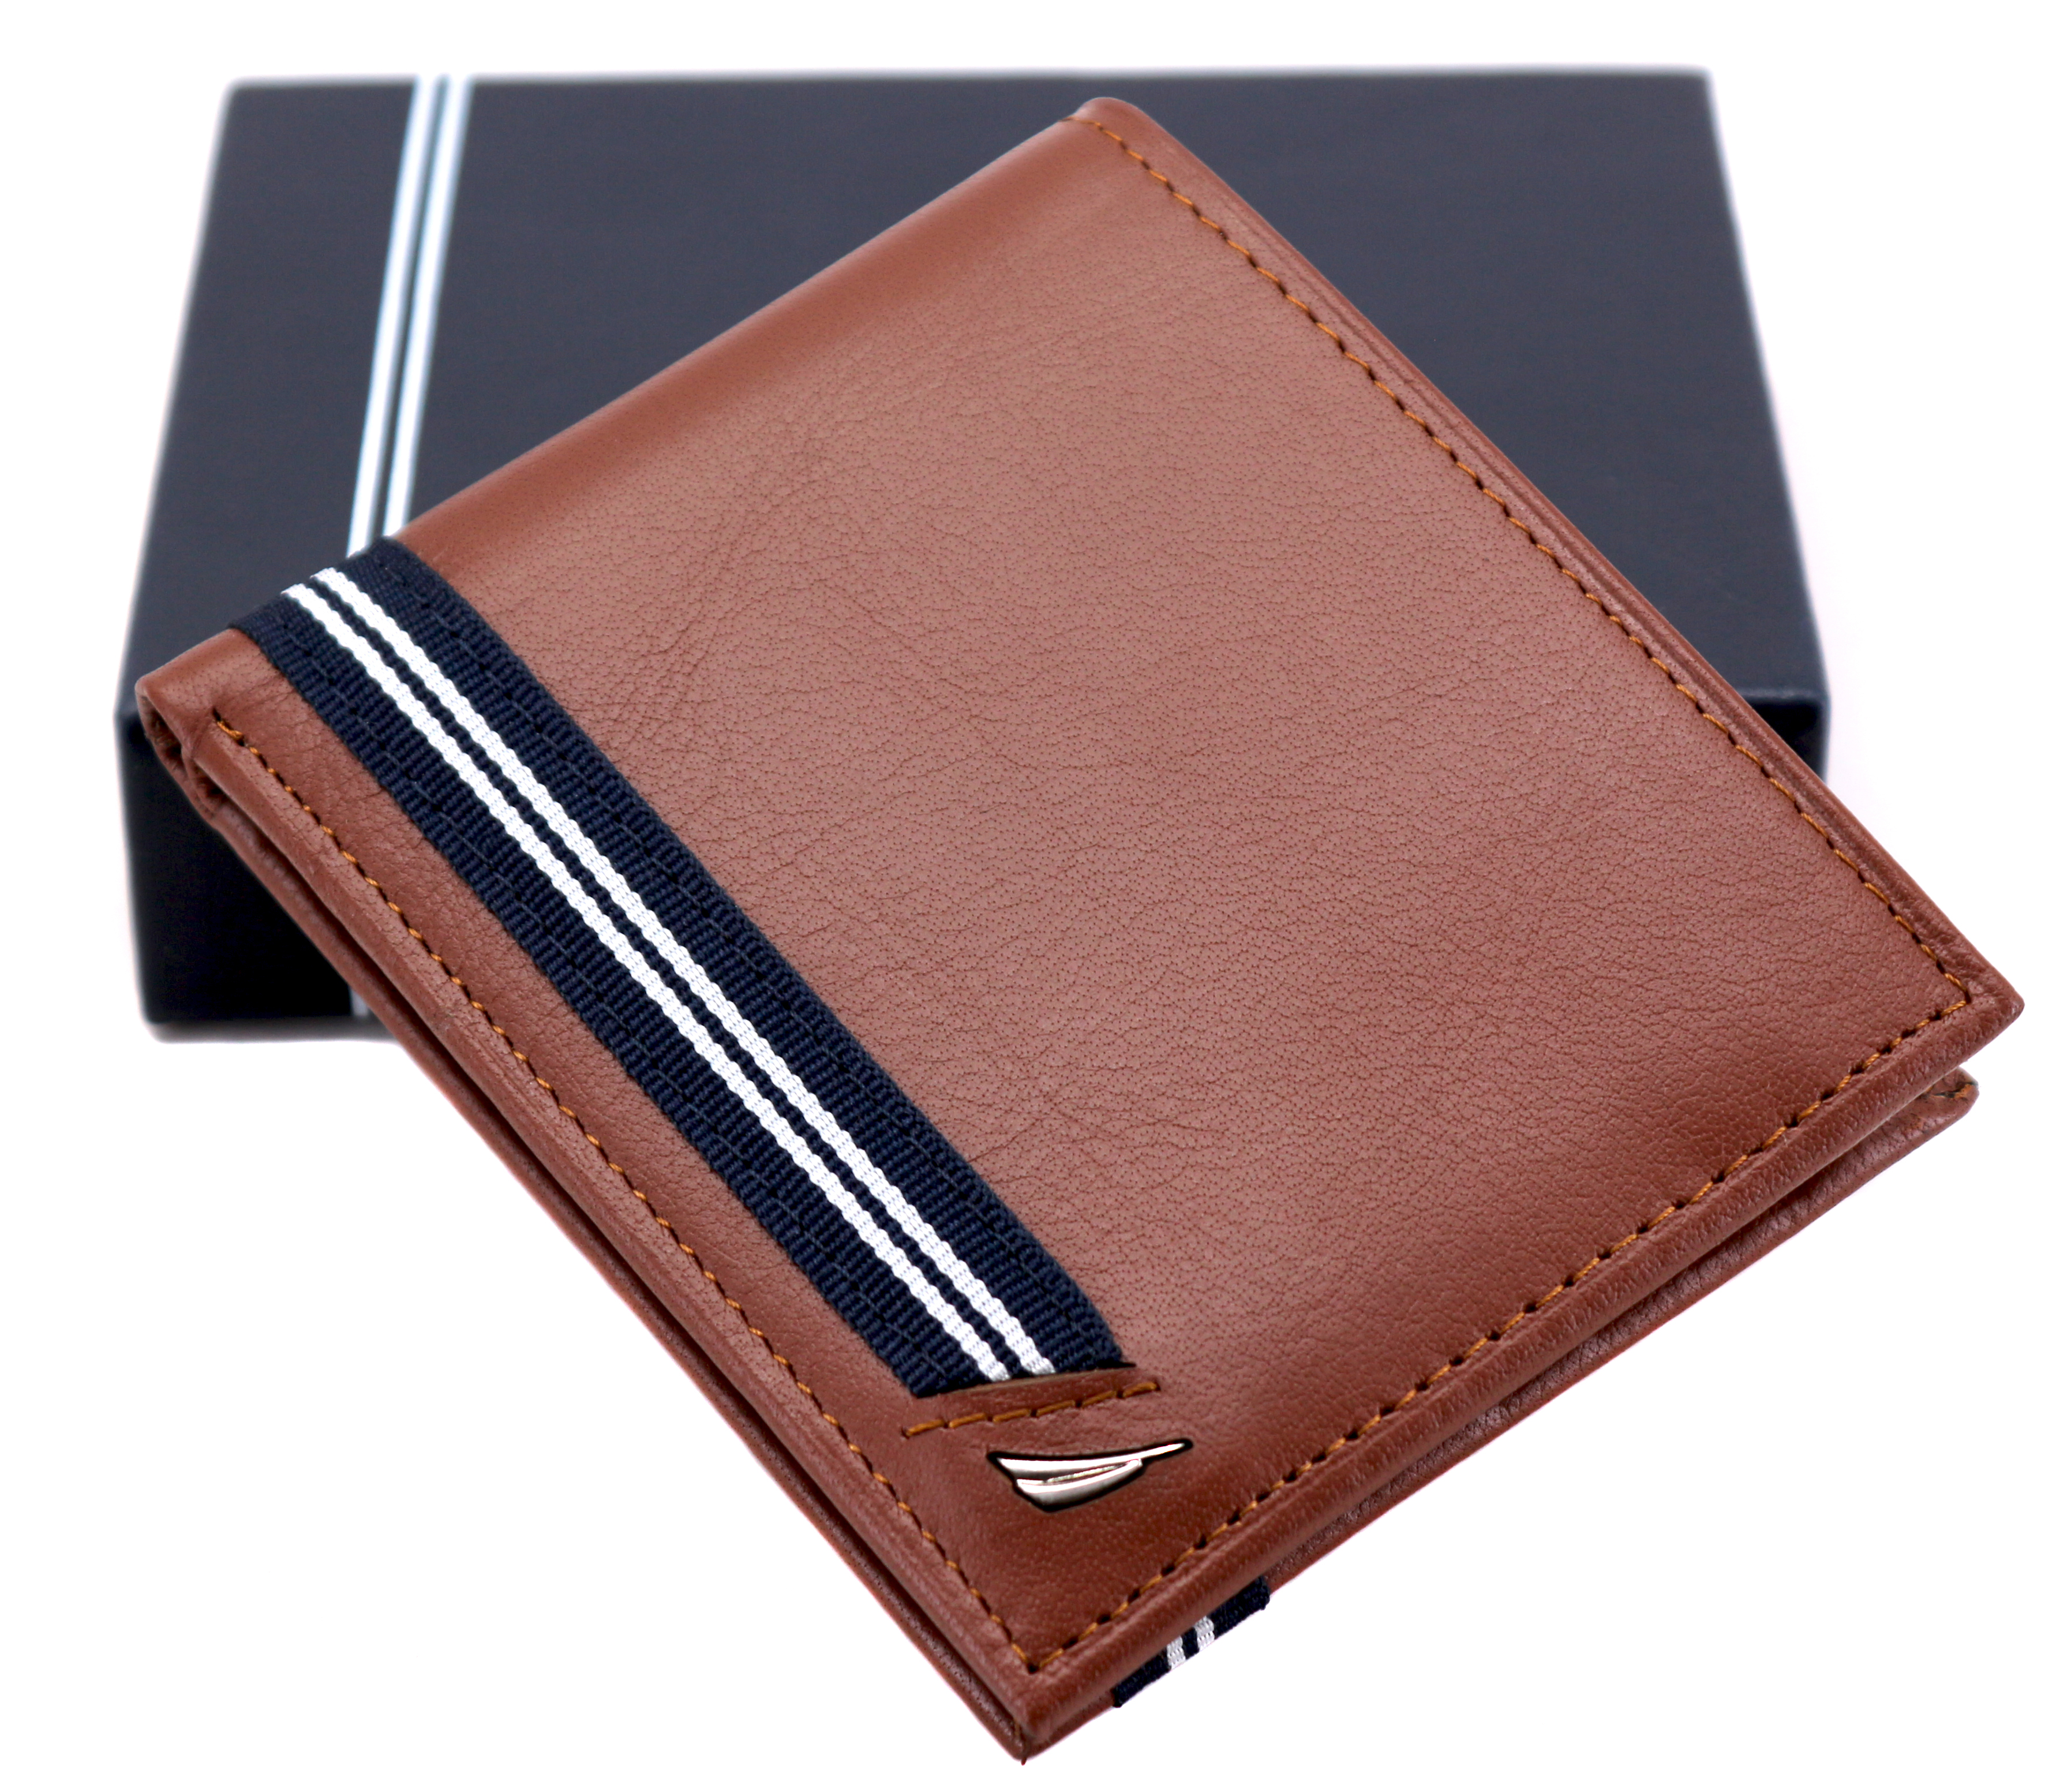 Nautica-Men-039-s-Genuine-Leather-Credit-Card-ID-Double-Billfold-Passcase-Wallet thumbnail 29